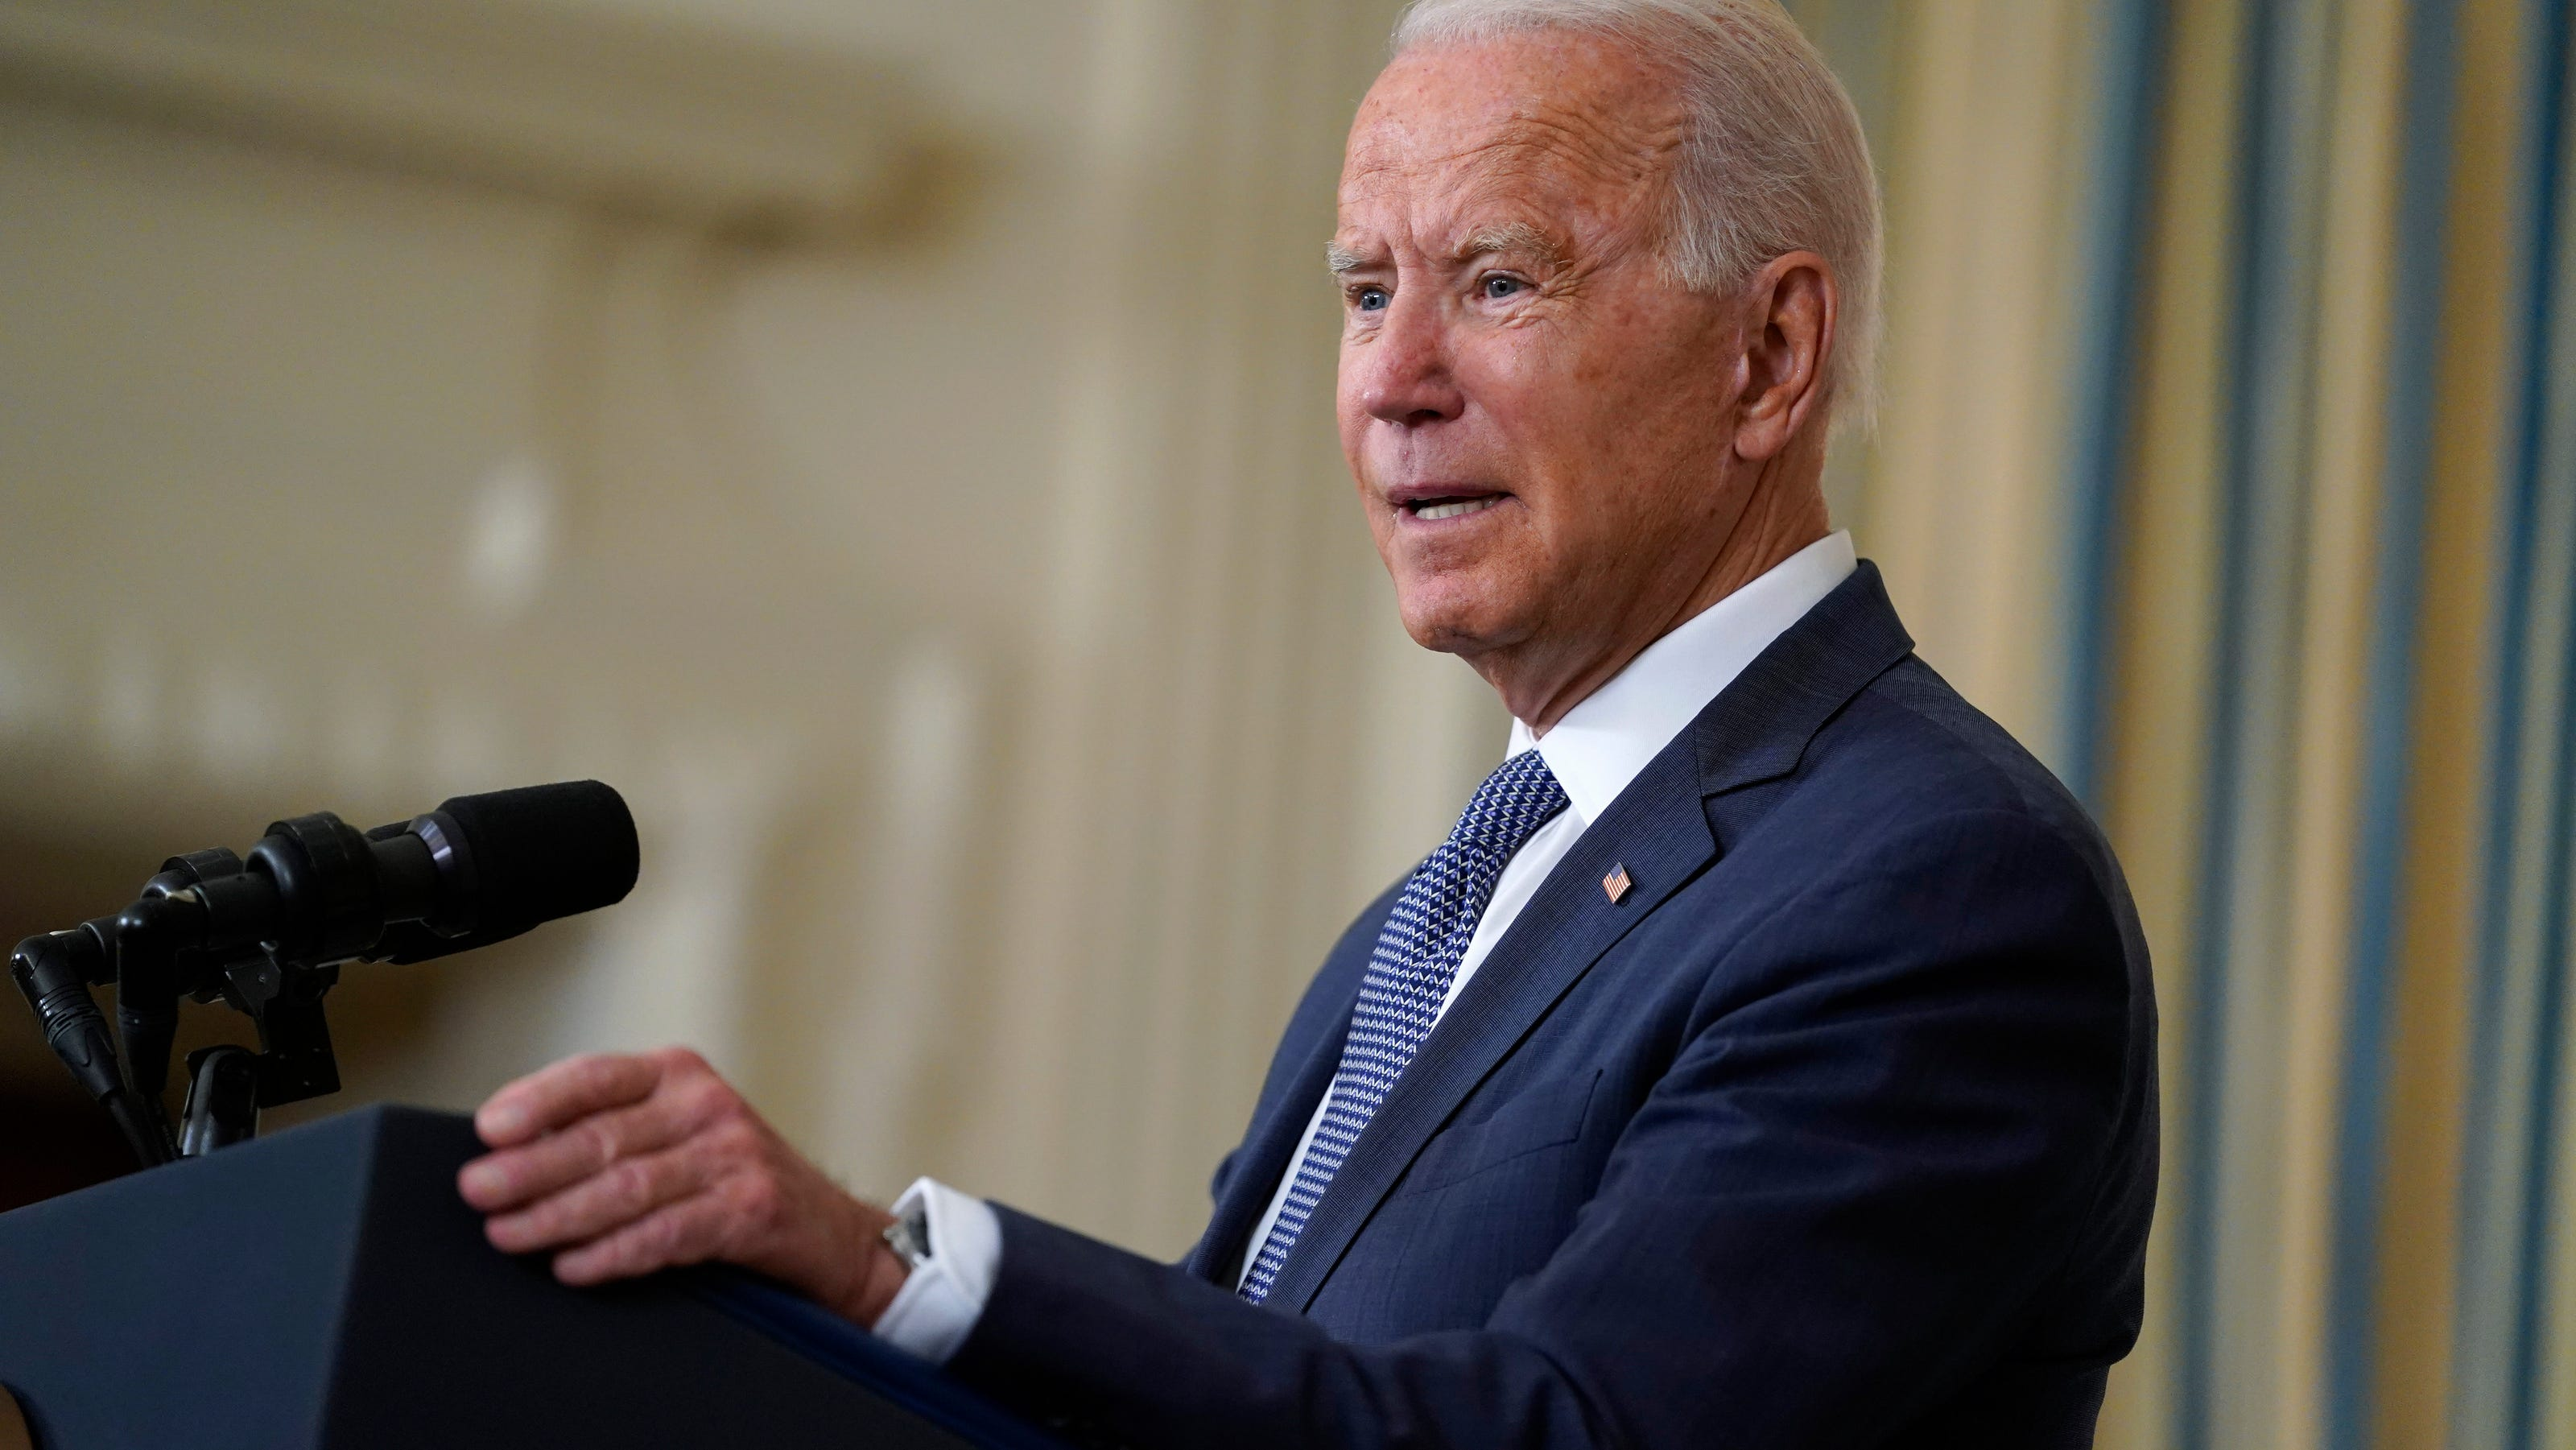 Biden urges landlords to pause evictions as White House scrambles for solutions to extend moratorium